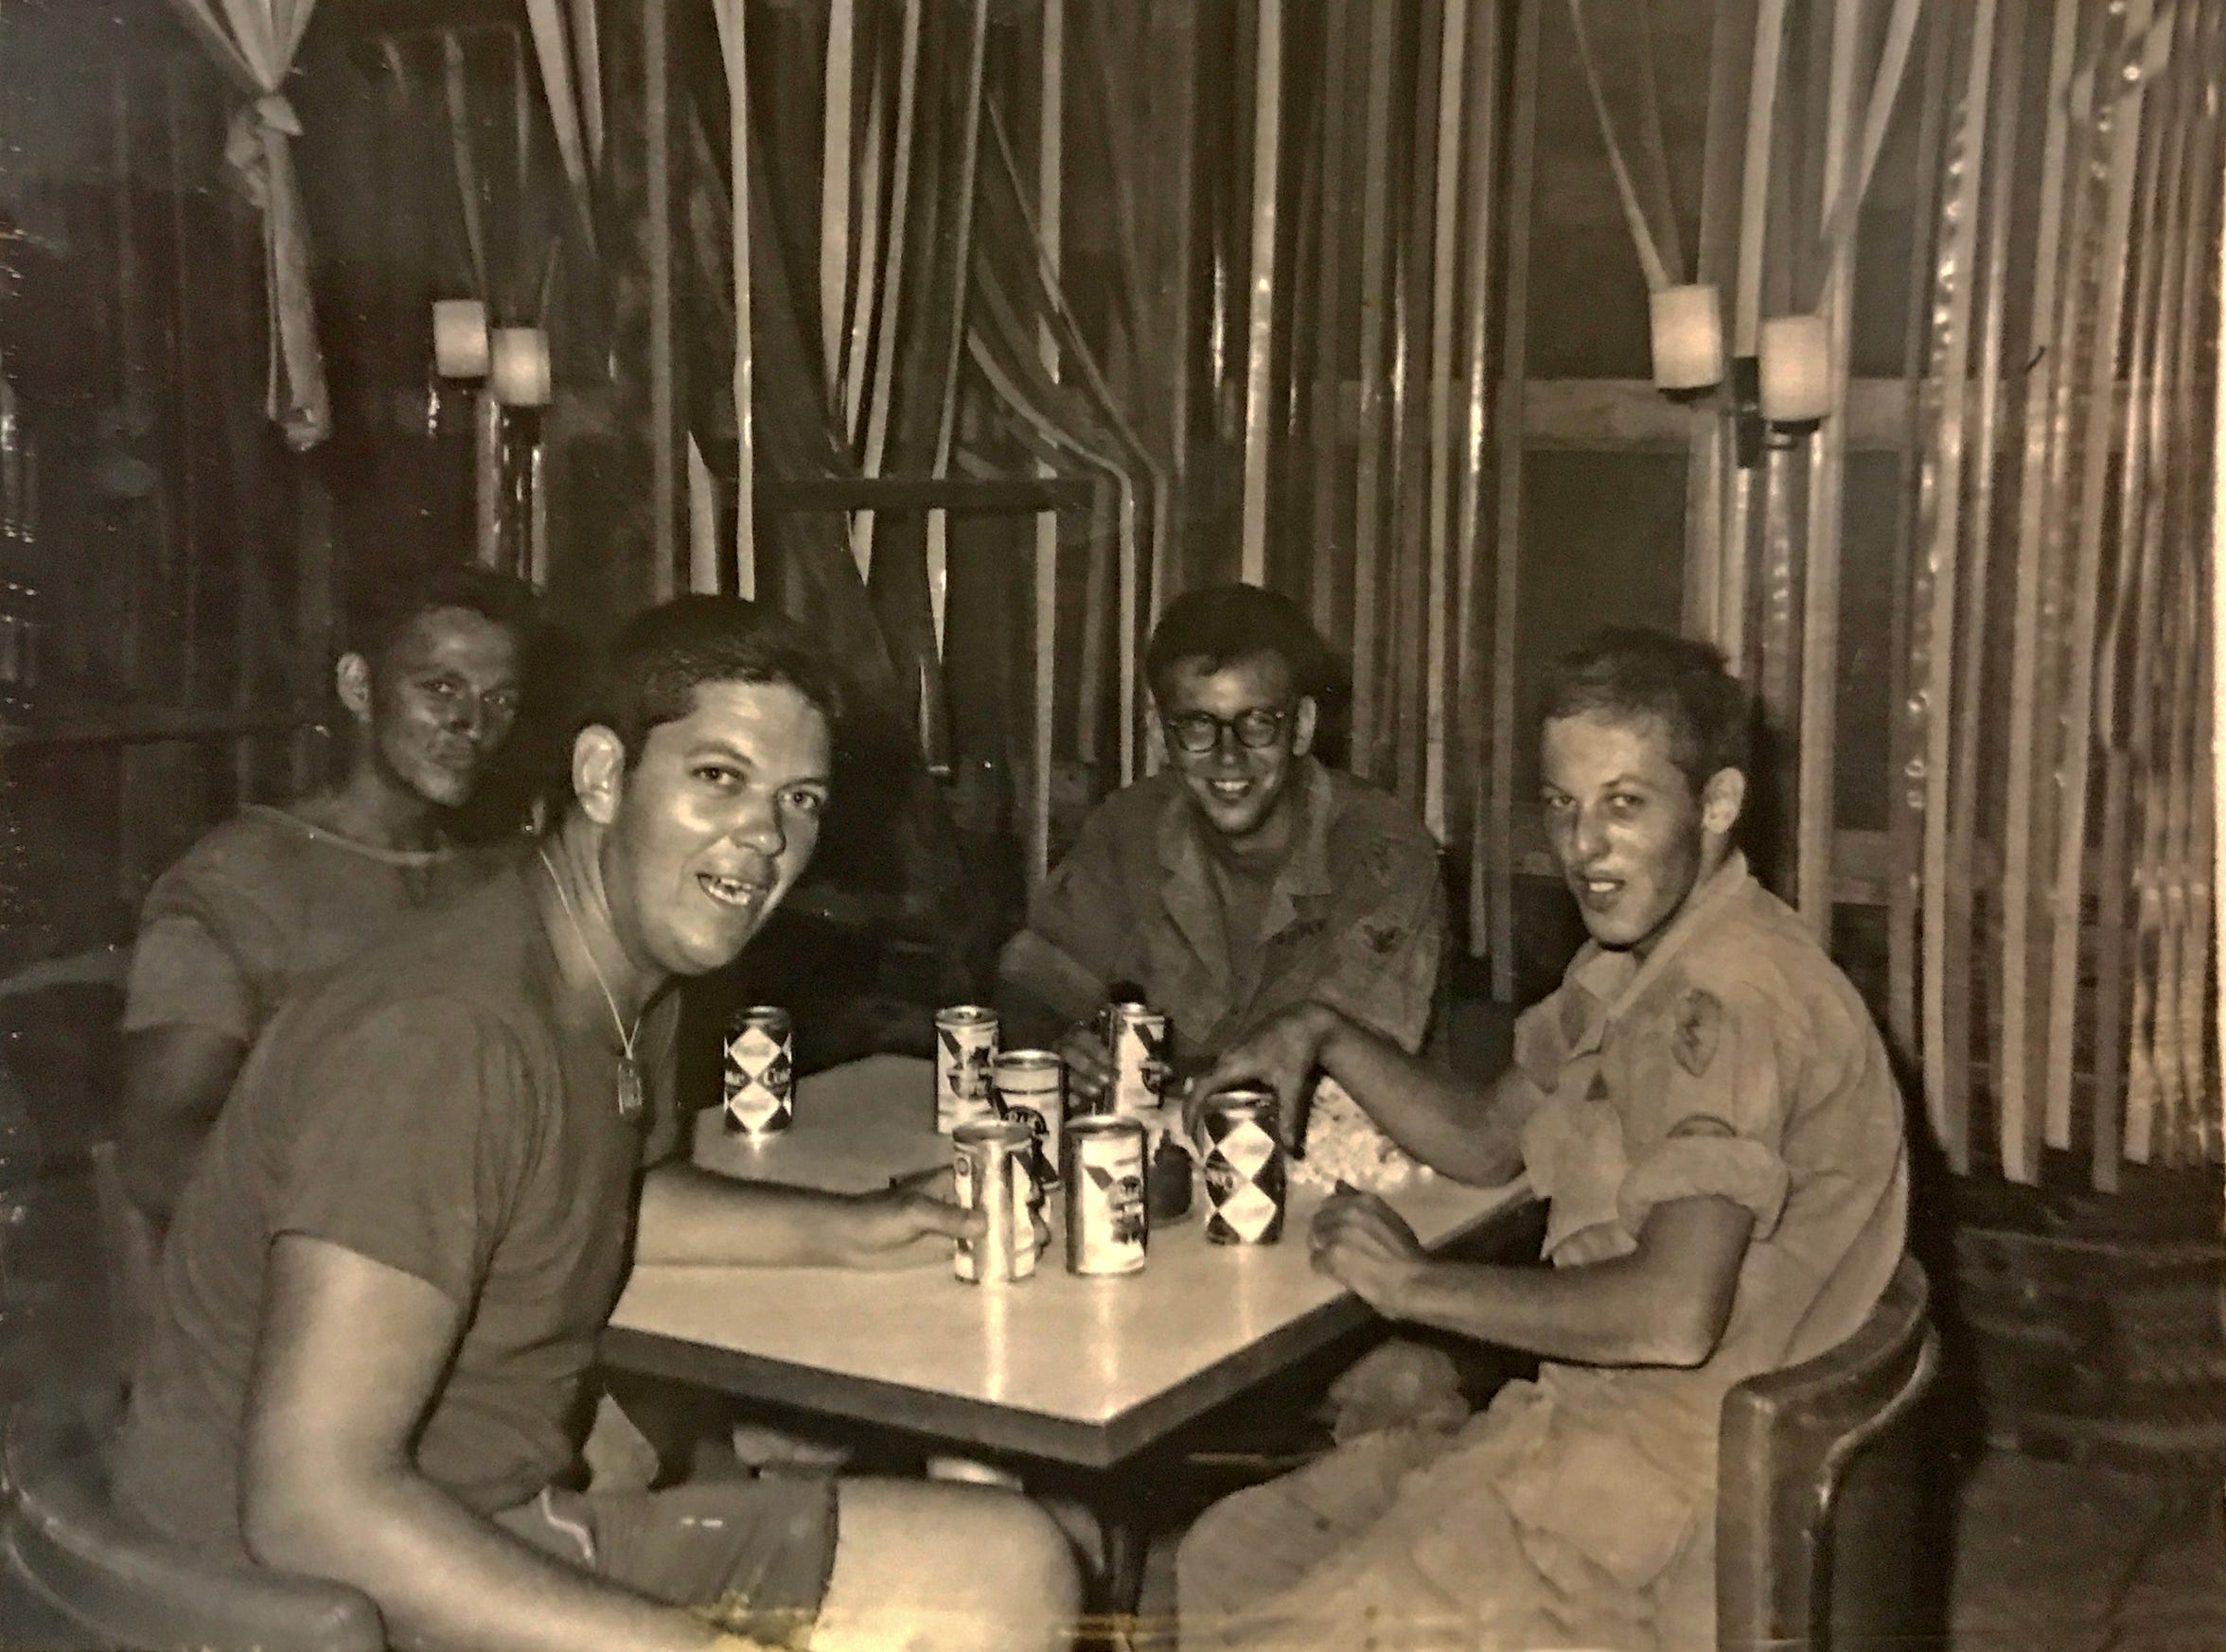 That Lloyd in the foreground, second from the left, relaxing with comrades in Vietnam.